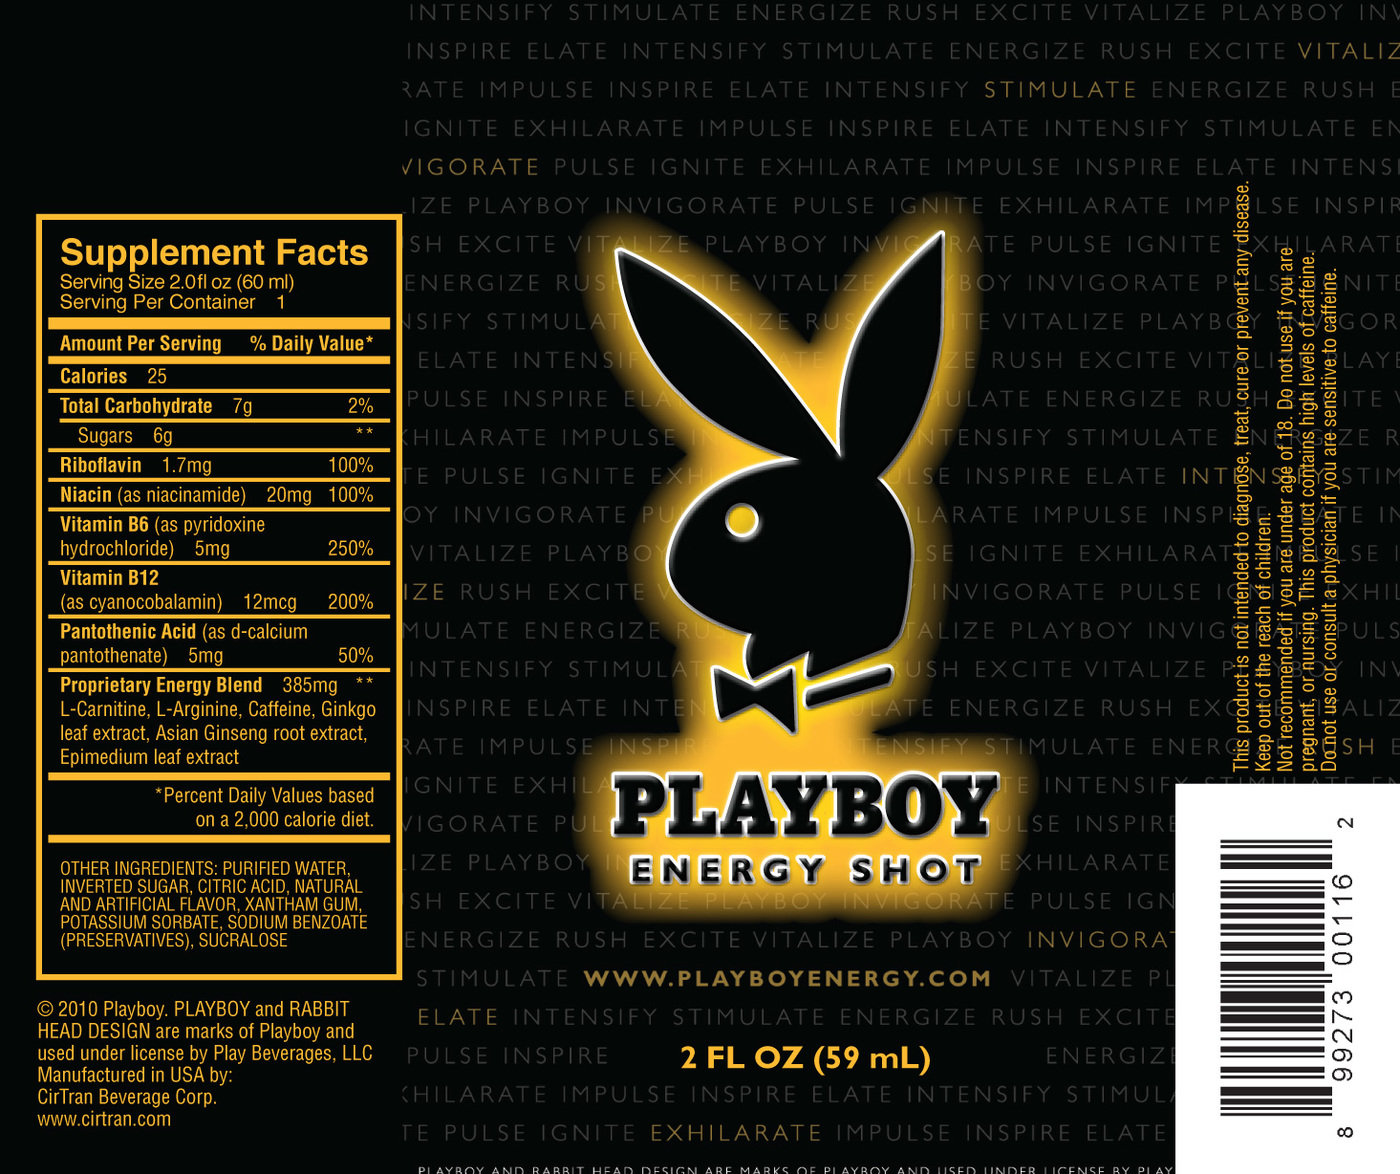 Playboy Labels